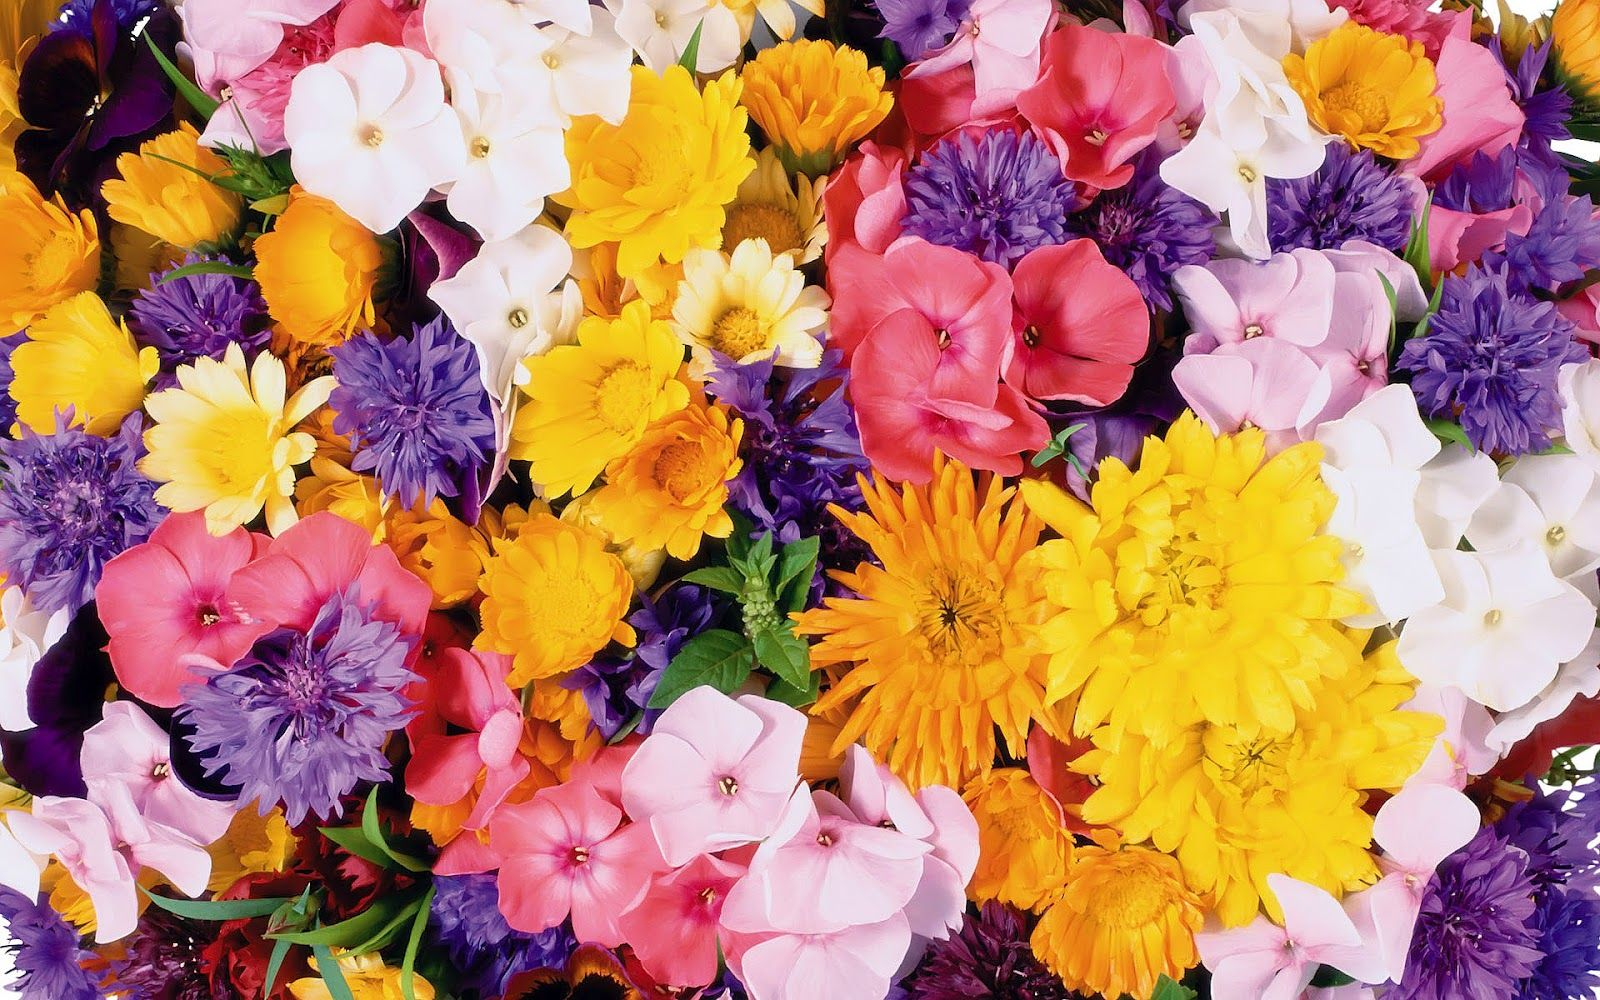 Flowers wallpapers high definition wallpapers high definition - Flower Phone Wallpapers 1600 1000 Best Flowers Wallpapers Hd 53 Wallpapers Adorable